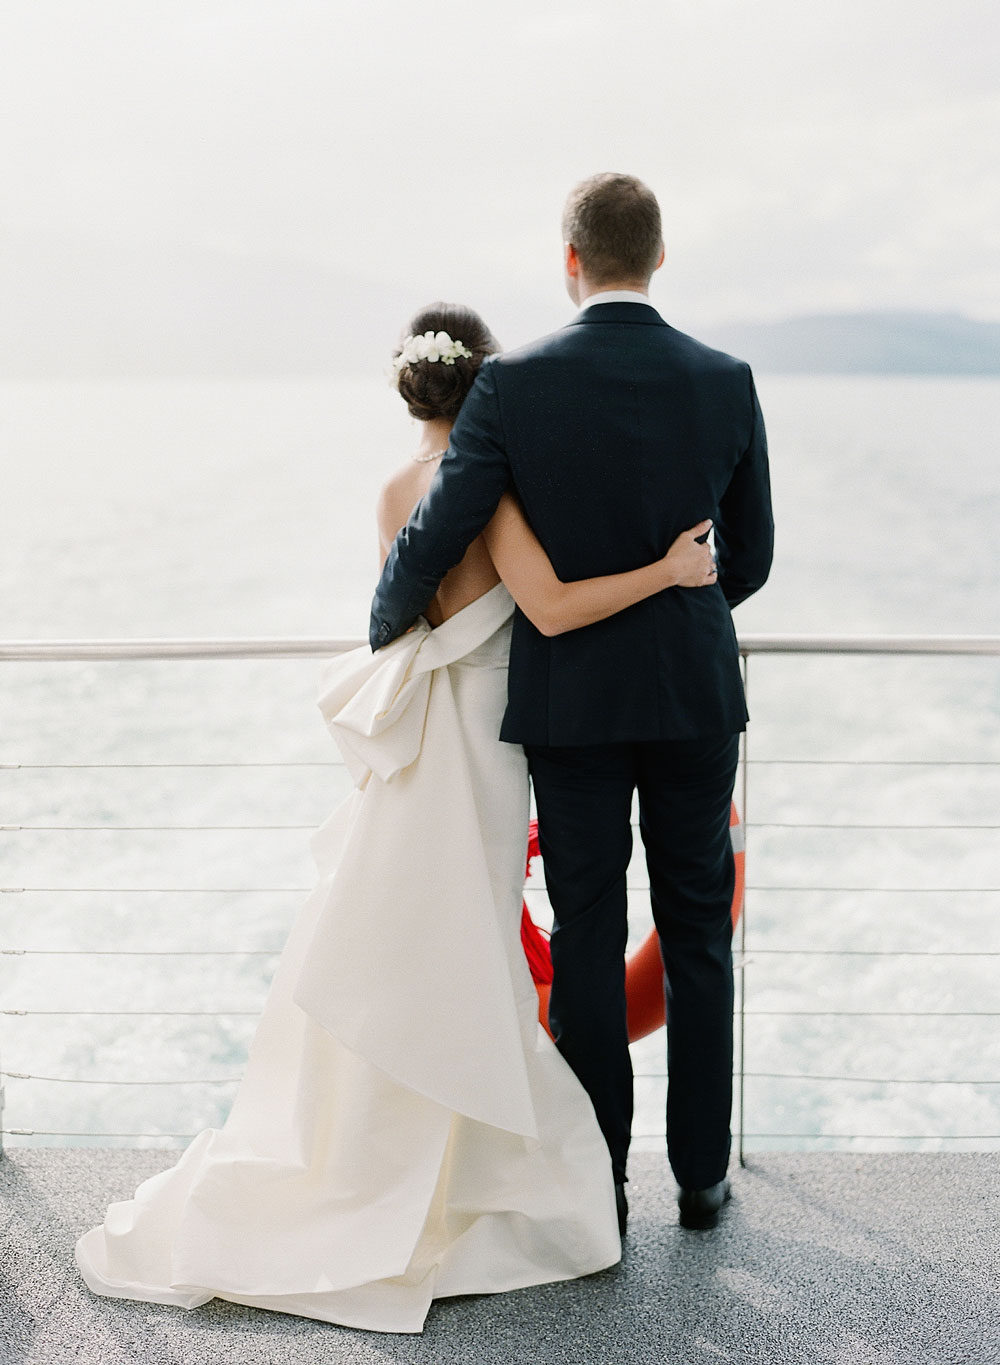 wedding_photographer_luzern_vitznau_11.jpg